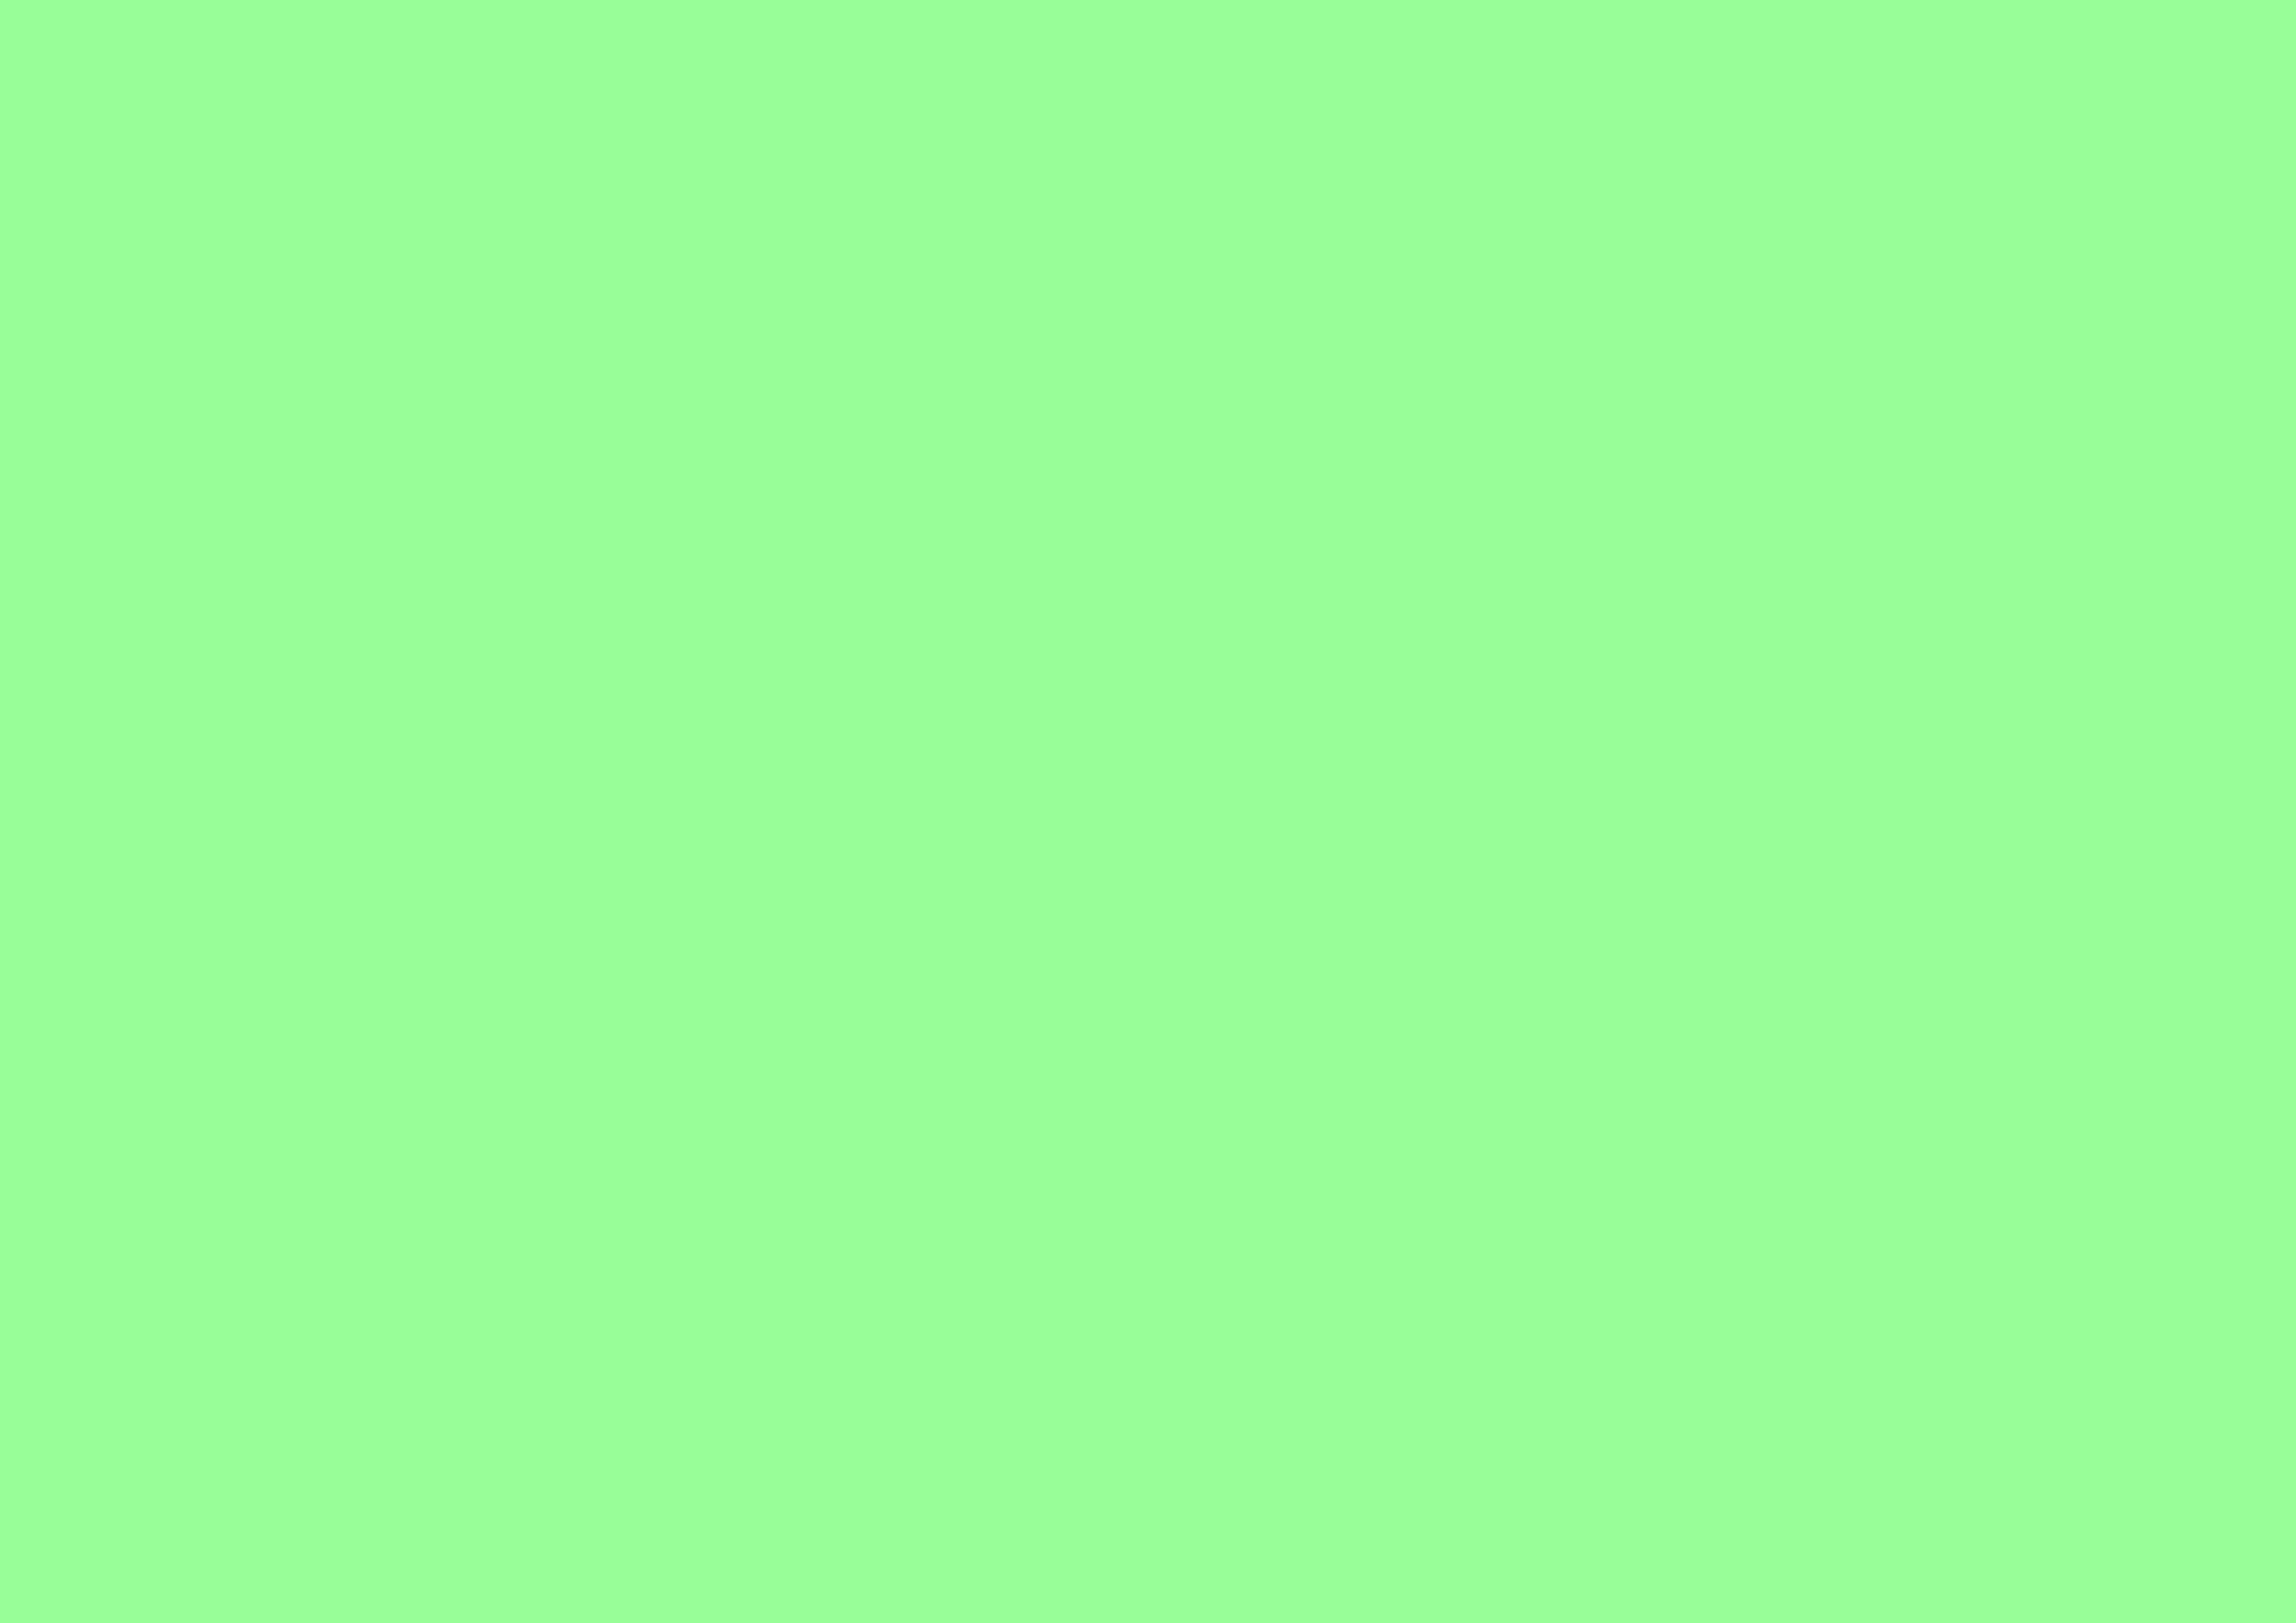 3508x2480 Mint Green Solid Color Background